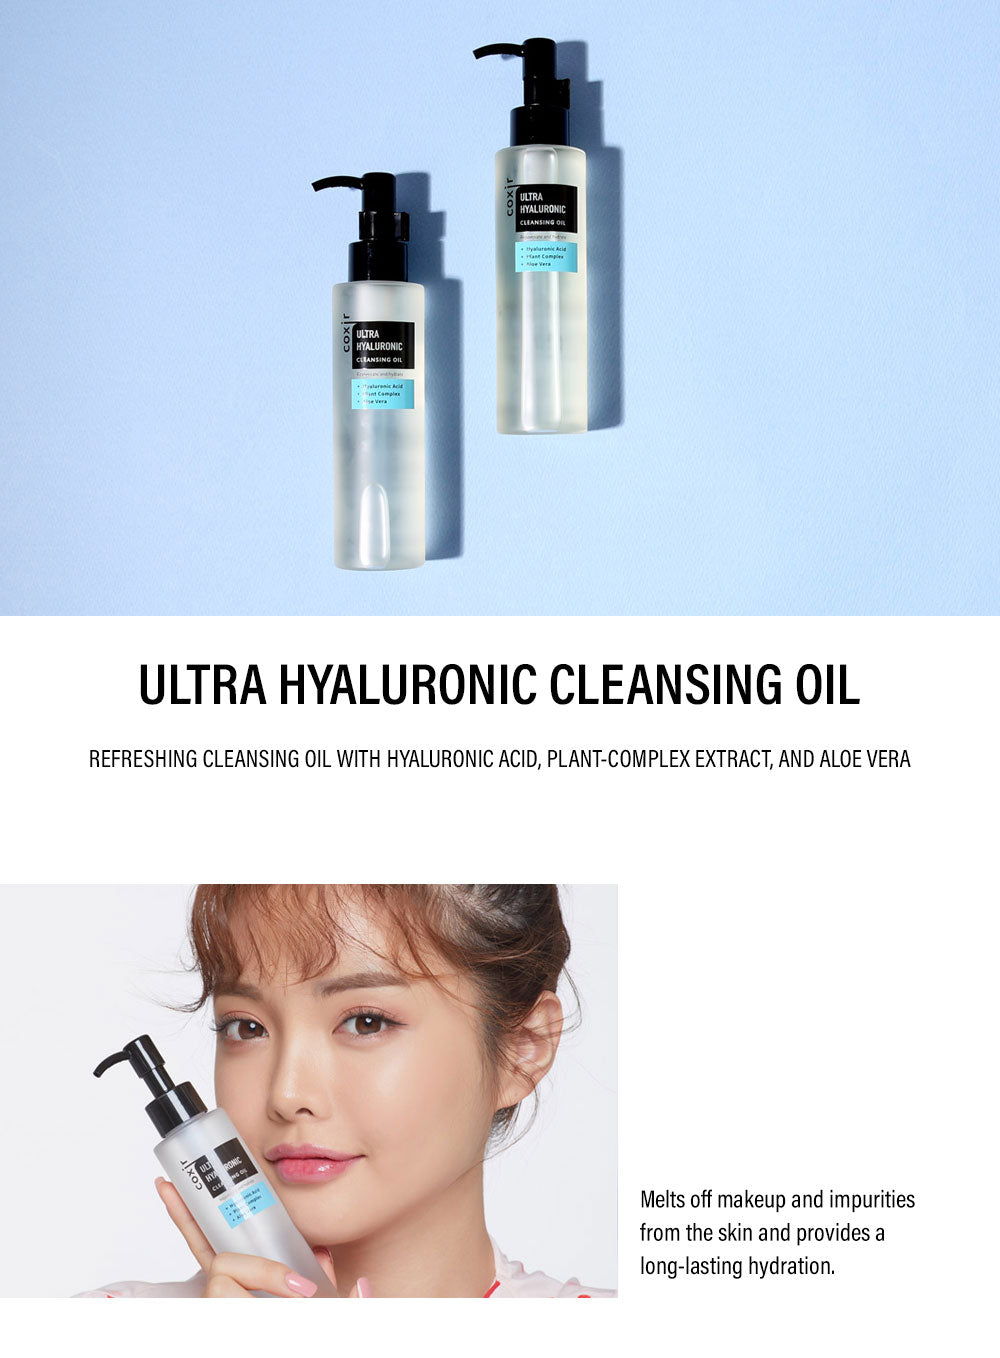 ultra-hyaluronic-cleansing-oil-1.jpg